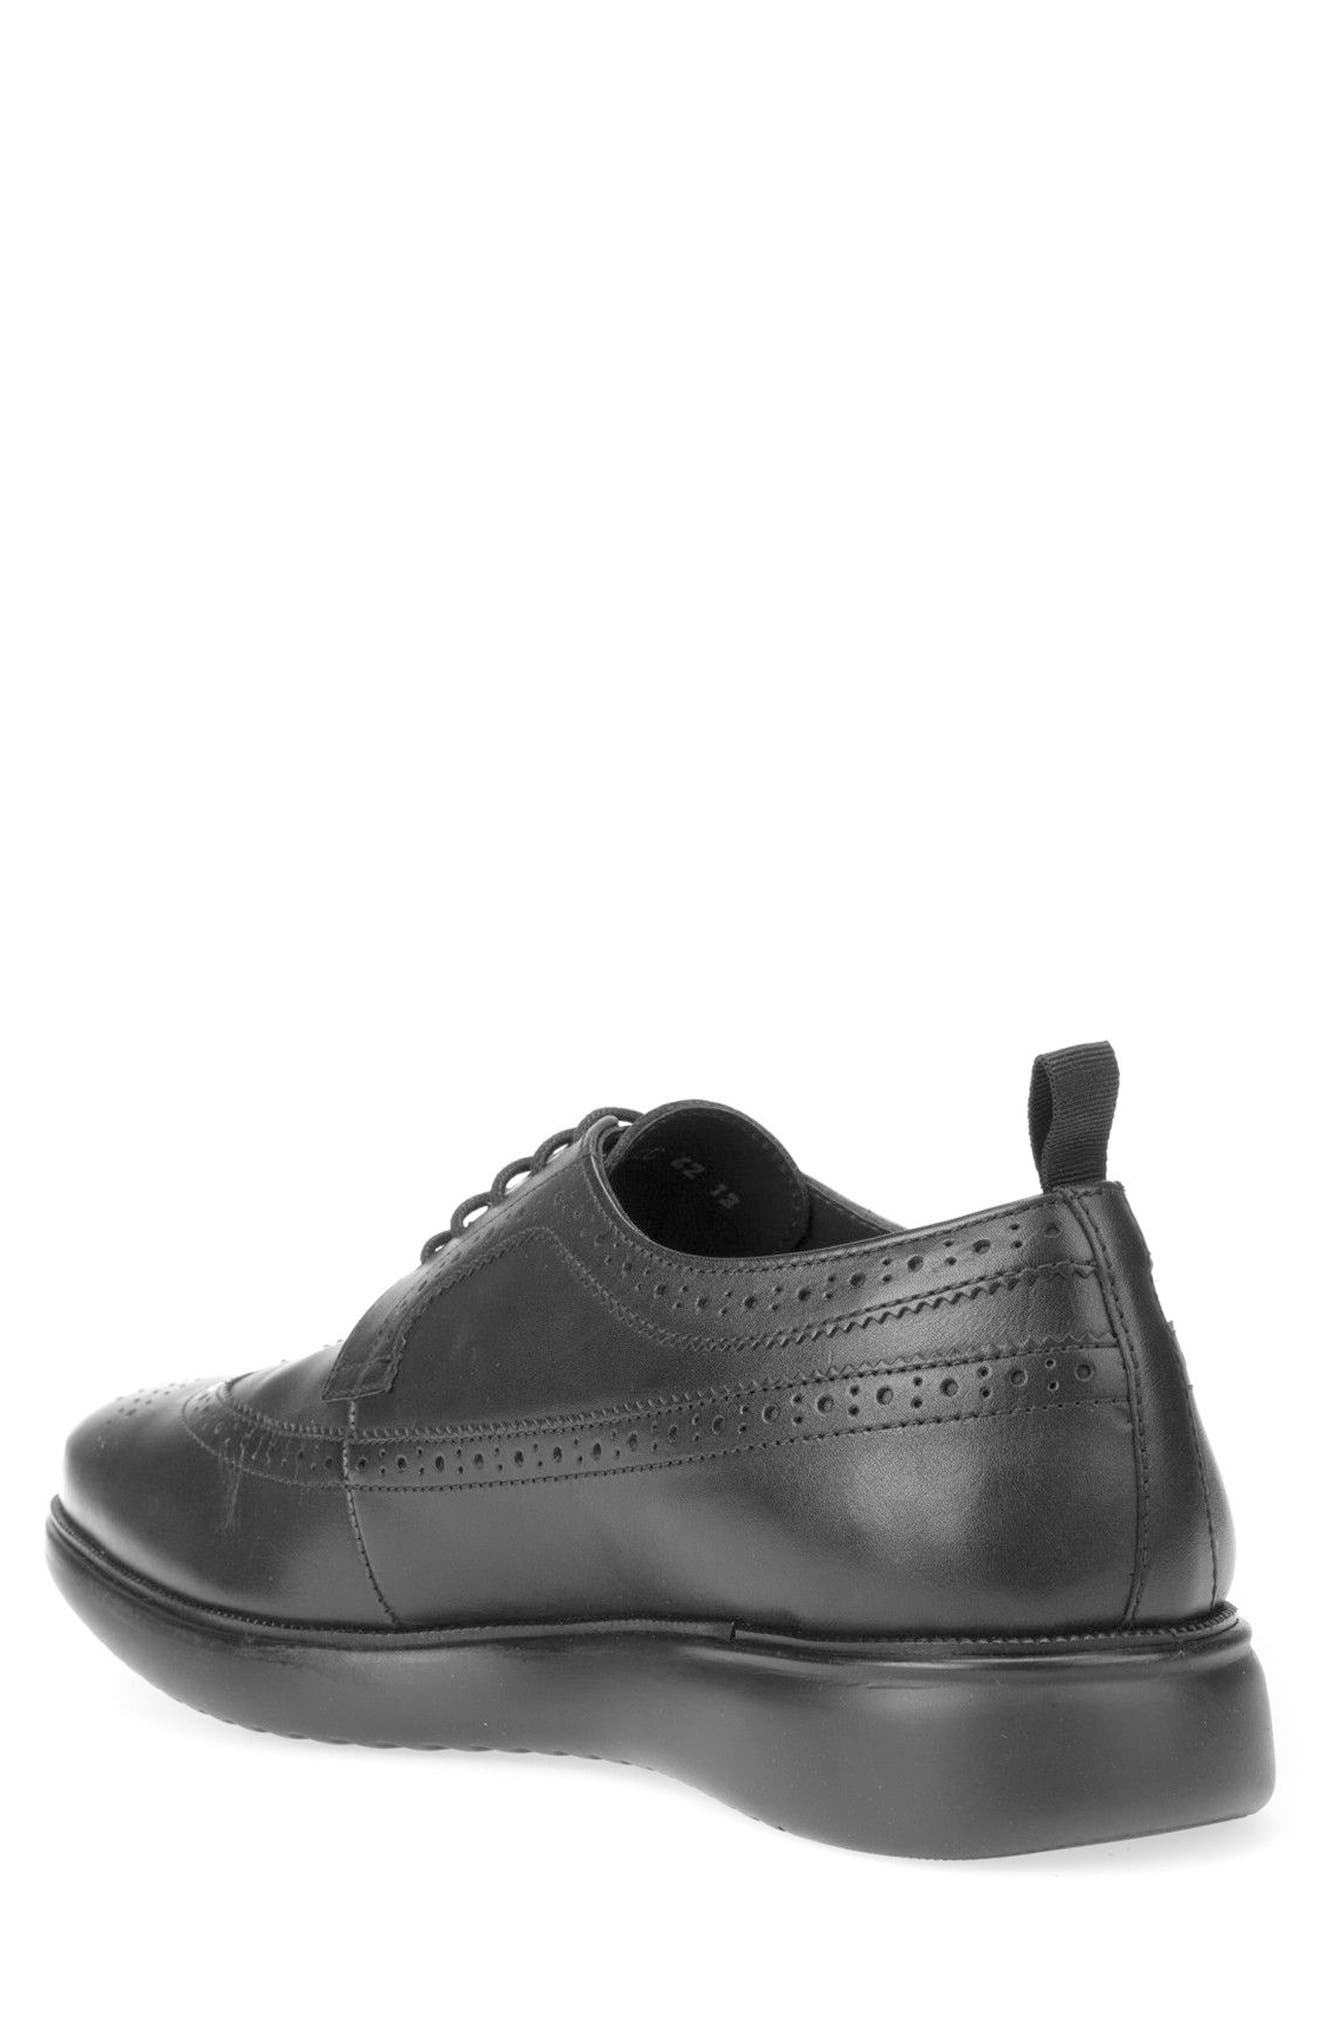 Winfred 3 Wingtip,                             Alternate thumbnail 2, color,                             Black Leather